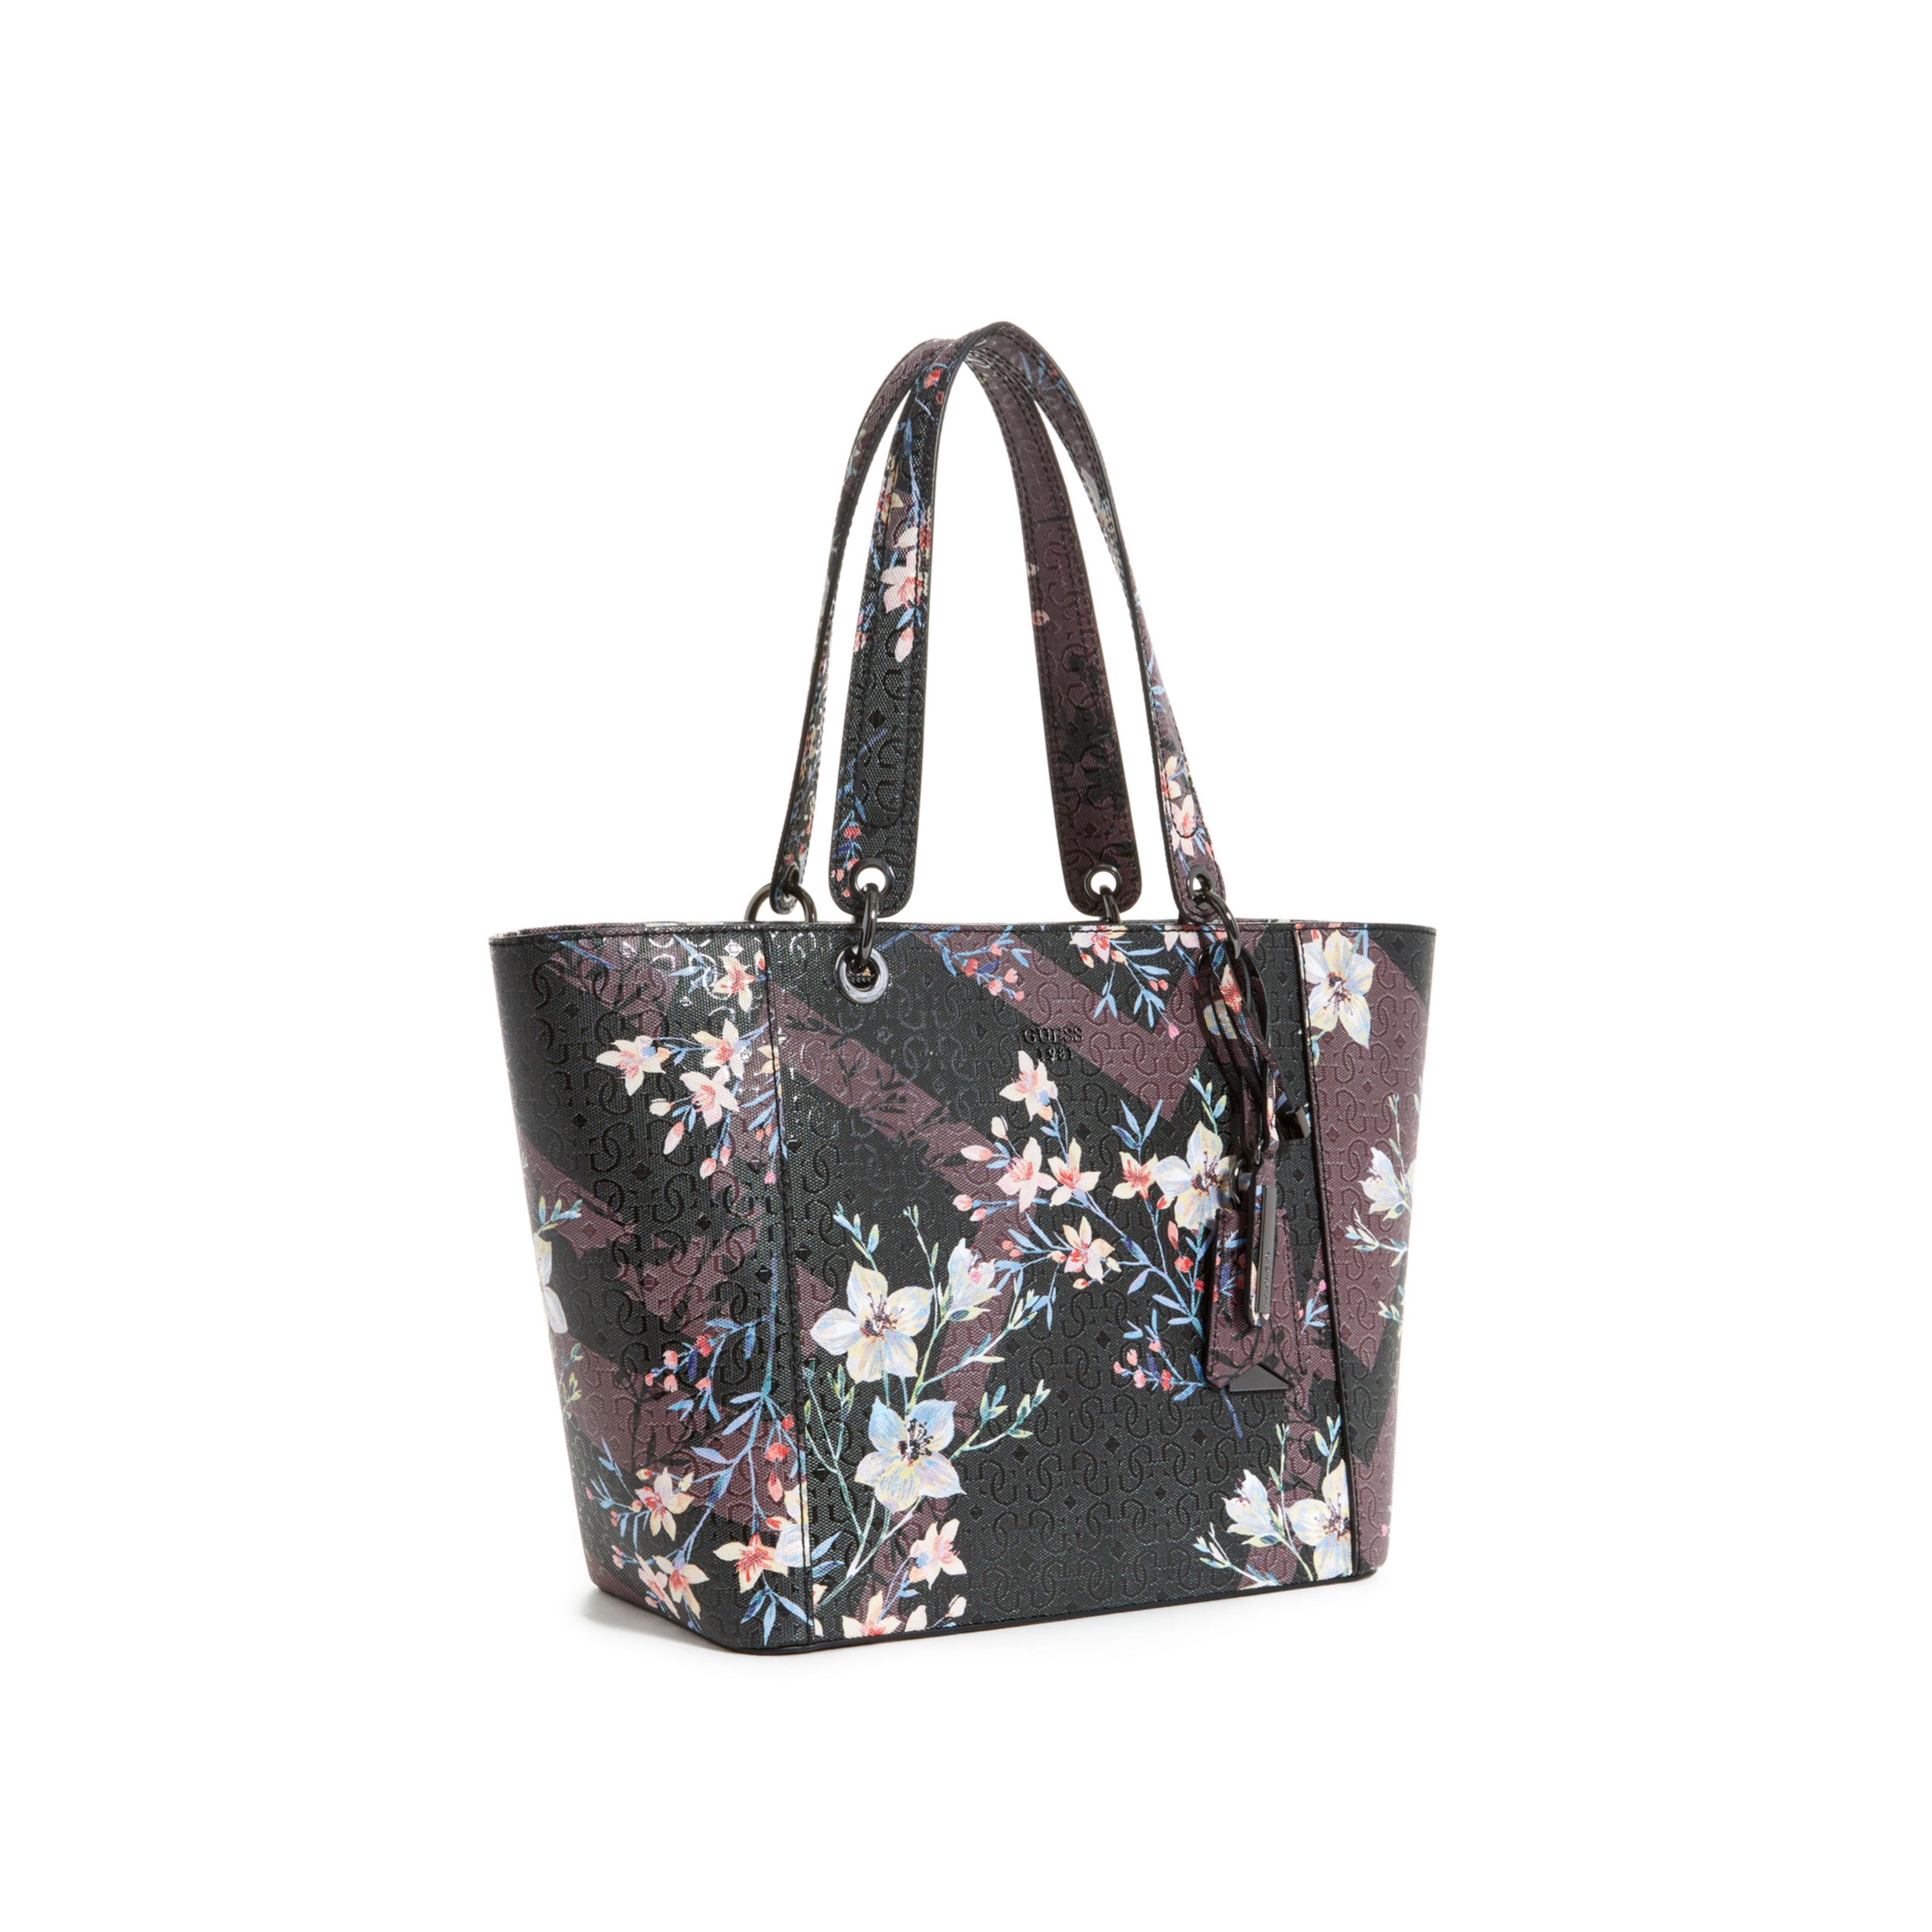 Lyst - Guess Kamryn Floral Tote